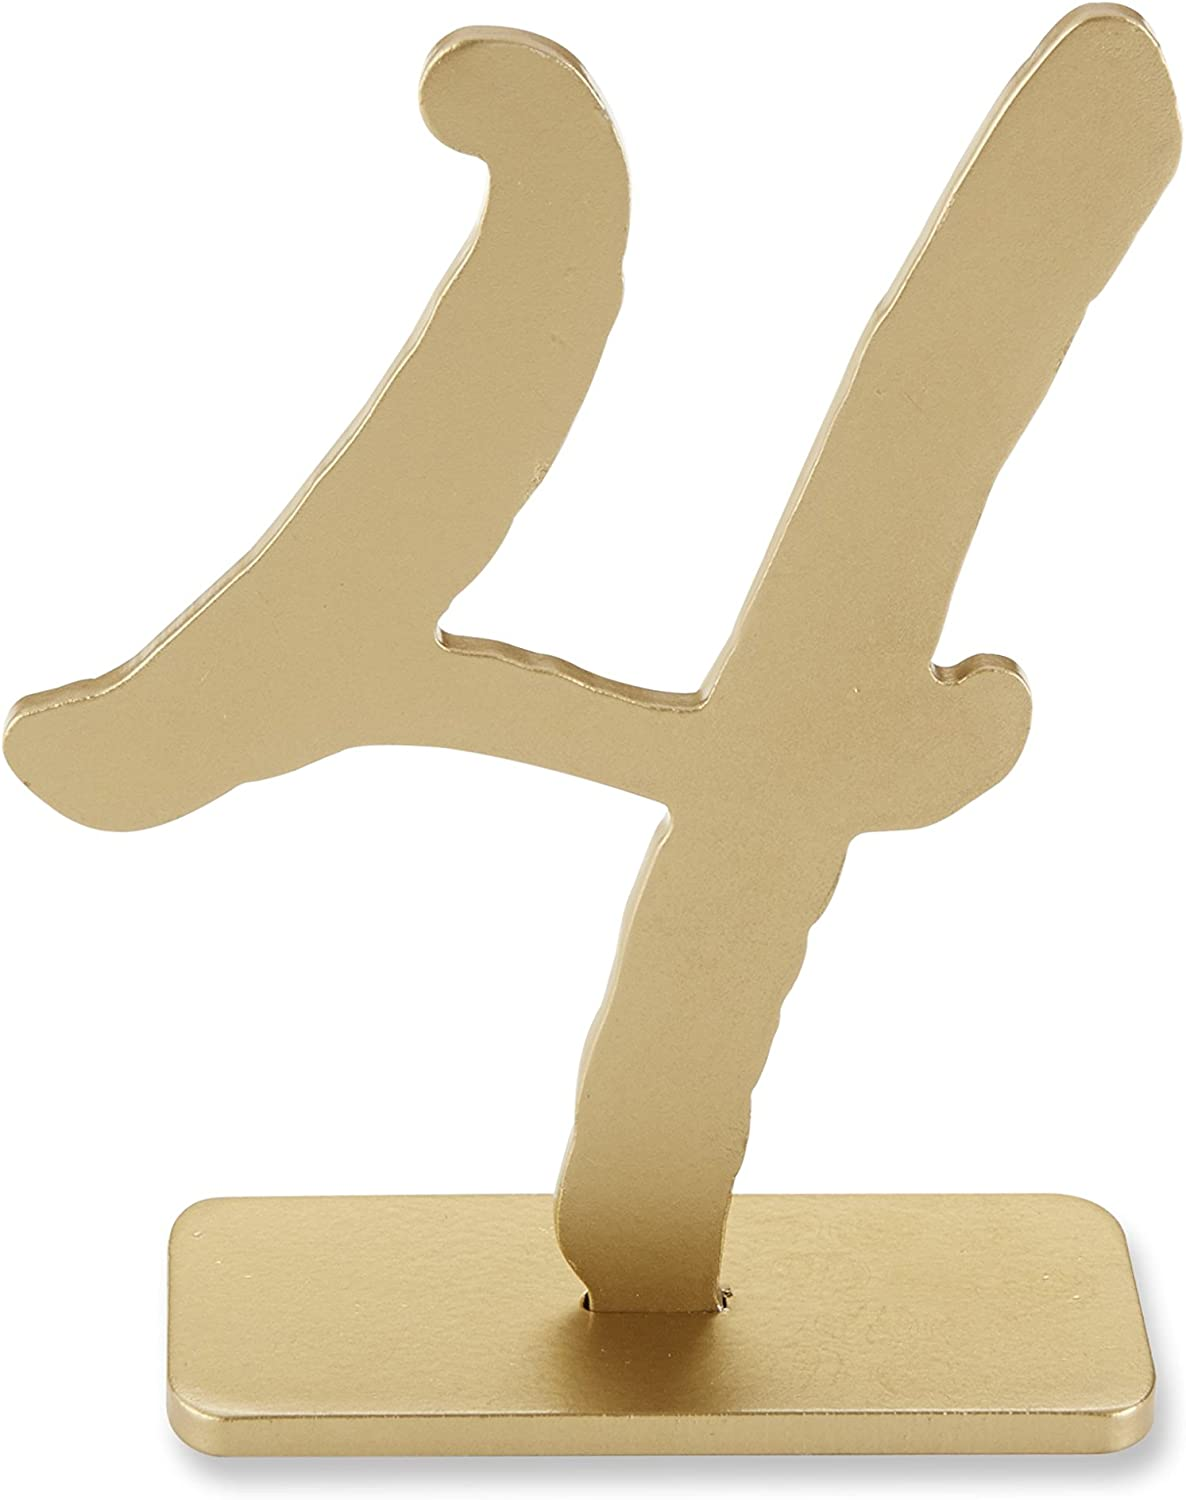 Numbers 1-6 Inc Good as Gold Collection Classic Gold Table Numbers 18094SM Kate Aspen